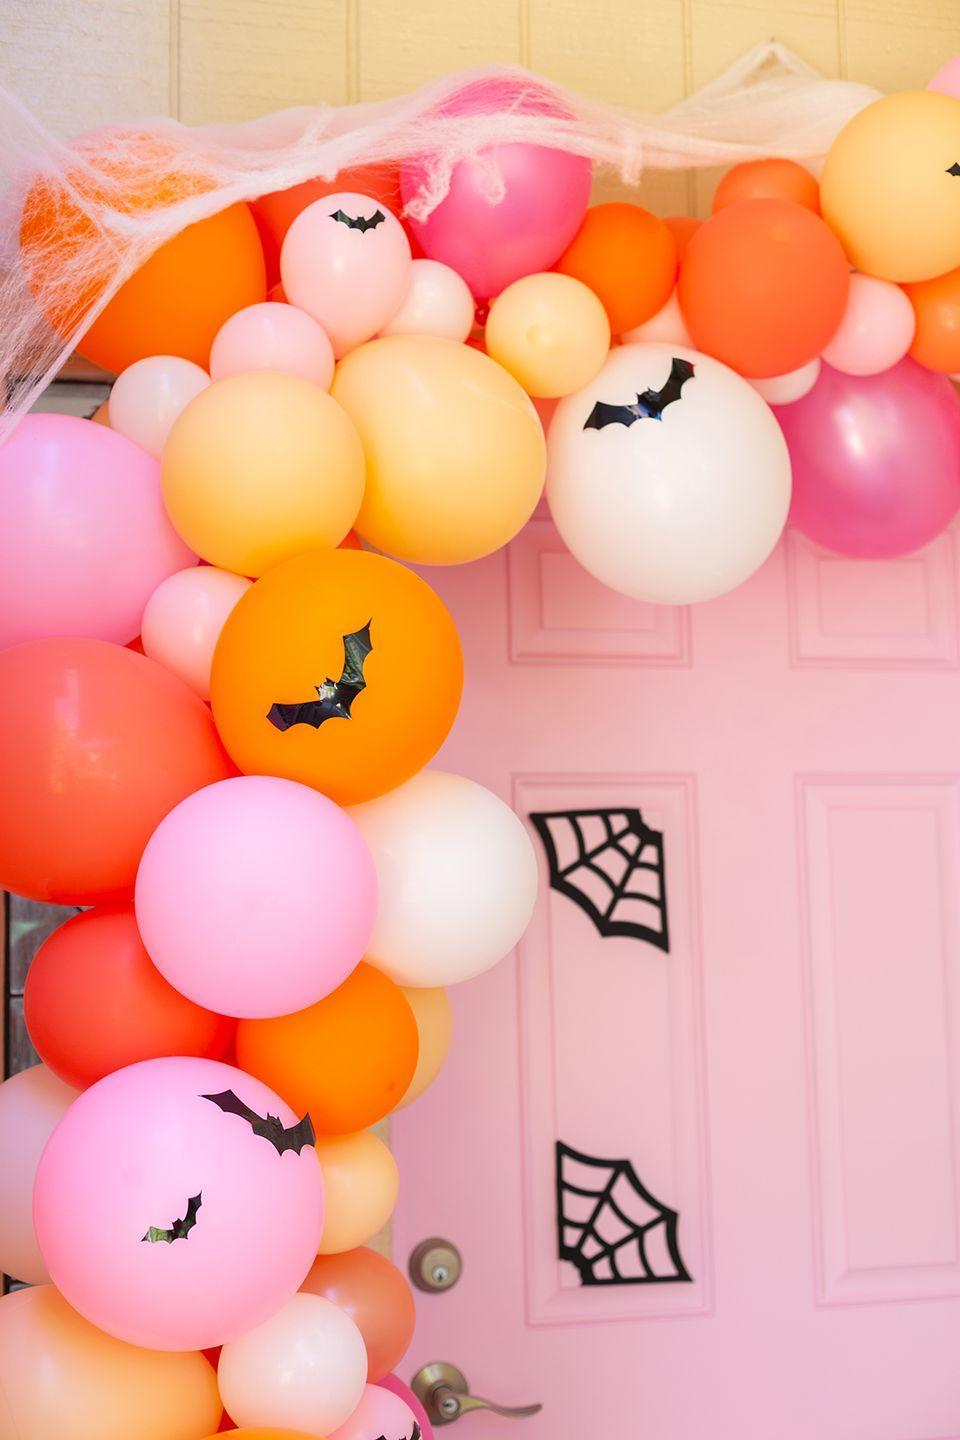 """<p>Your front door won't know what hit it! This brightly colored, out-of-the-box idea is a little more temporary than some of the other options on our list, but it's an excellent way to welcome guests to a one-night-only Halloween party.</p><p><strong>Get the tutorial at <a href=""""http://www.awwsam.com/2019/10/our-awwbode-halloween-door-decor.html"""" rel=""""nofollow noopener"""" target=""""_blank"""" data-ylk=""""slk:Aww Sam"""" class=""""link rapid-noclick-resp"""">Aww Sam</a>.</strong></p><p><a class=""""link rapid-noclick-resp"""" href=""""https://go.redirectingat.com?id=74968X1596630&url=https%3A%2F%2Fwww.walmart.com%2Fsearch%2F%3Fquery%3Dballoons&sref=https%3A%2F%2Fwww.thepioneerwoman.com%2Fholidays-celebrations%2Fg32894423%2Foutdoor-halloween-decorations%2F"""" rel=""""nofollow noopener"""" target=""""_blank"""" data-ylk=""""slk:SHOP BALLOONS"""">SHOP BALLOONS </a></p>"""